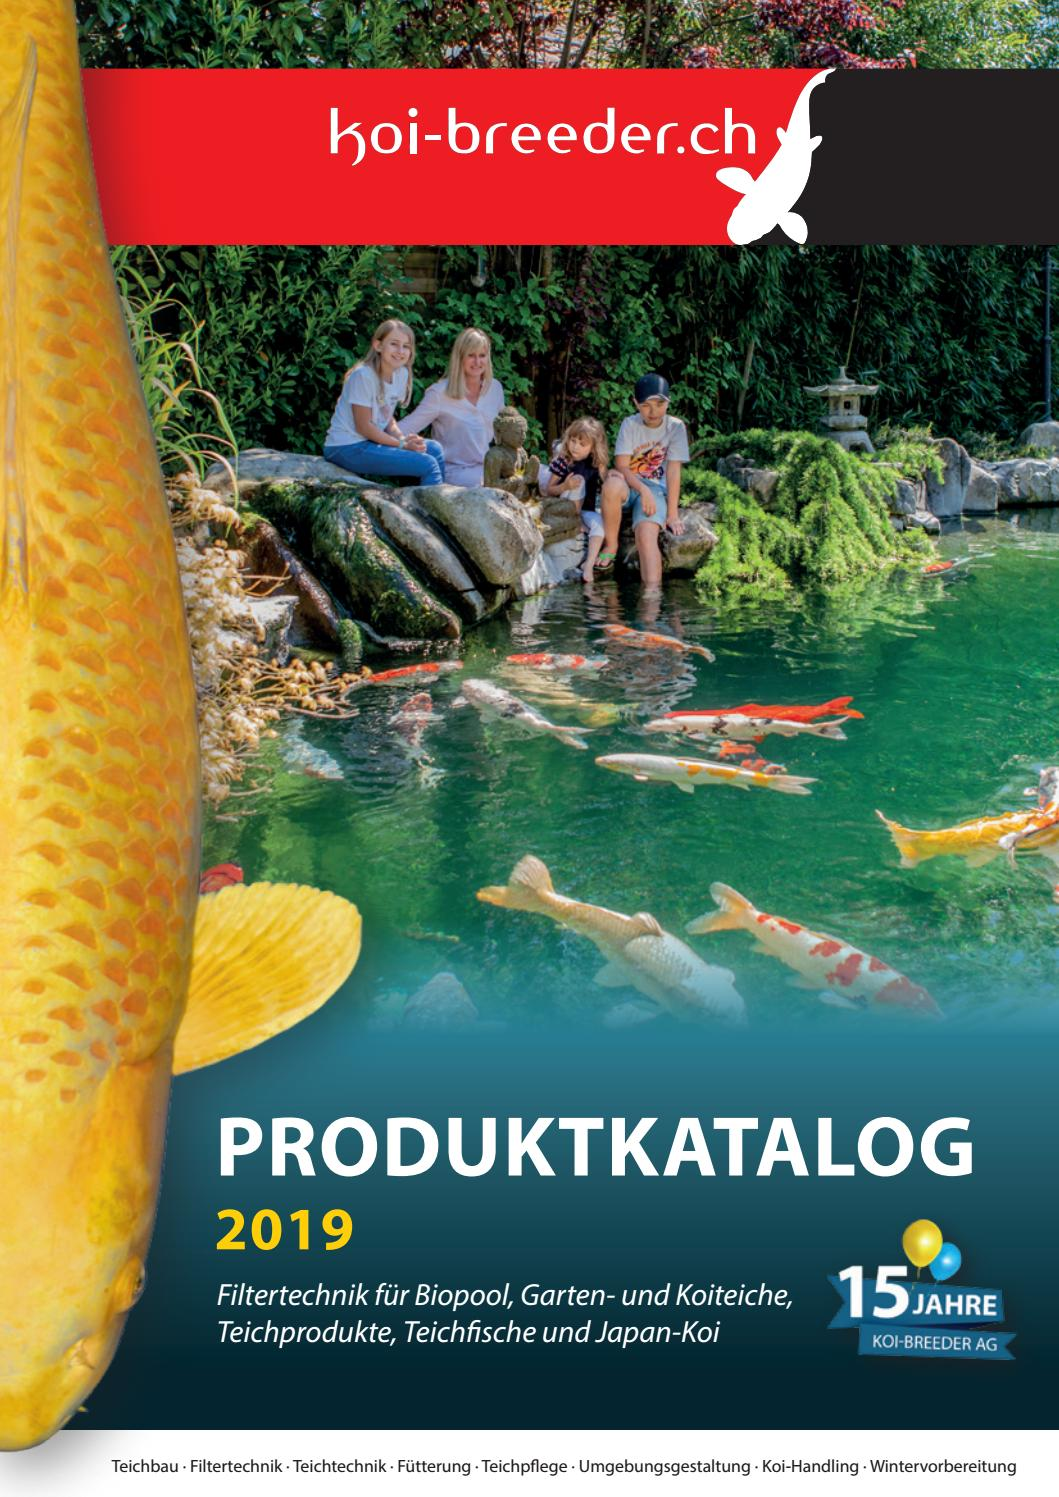 Quick Up Pool Im Garten Aufstellen Koi Breeder Produktkatalog 2019 By Koi Breeder Ag Issuu